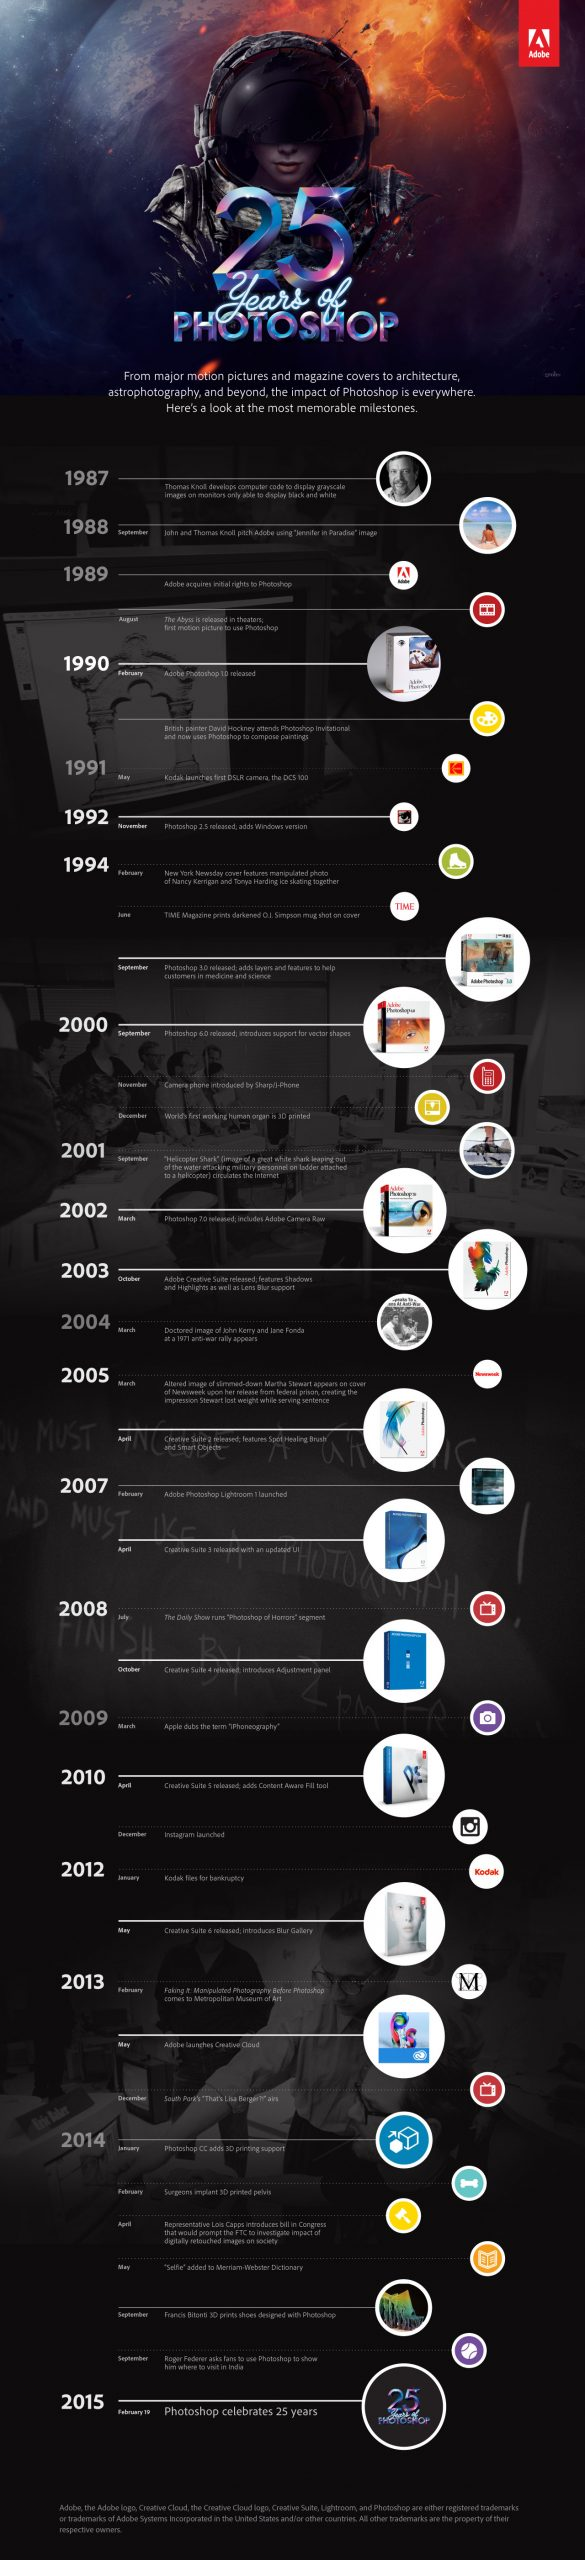 Photoshop 25th Anniversary Timeline